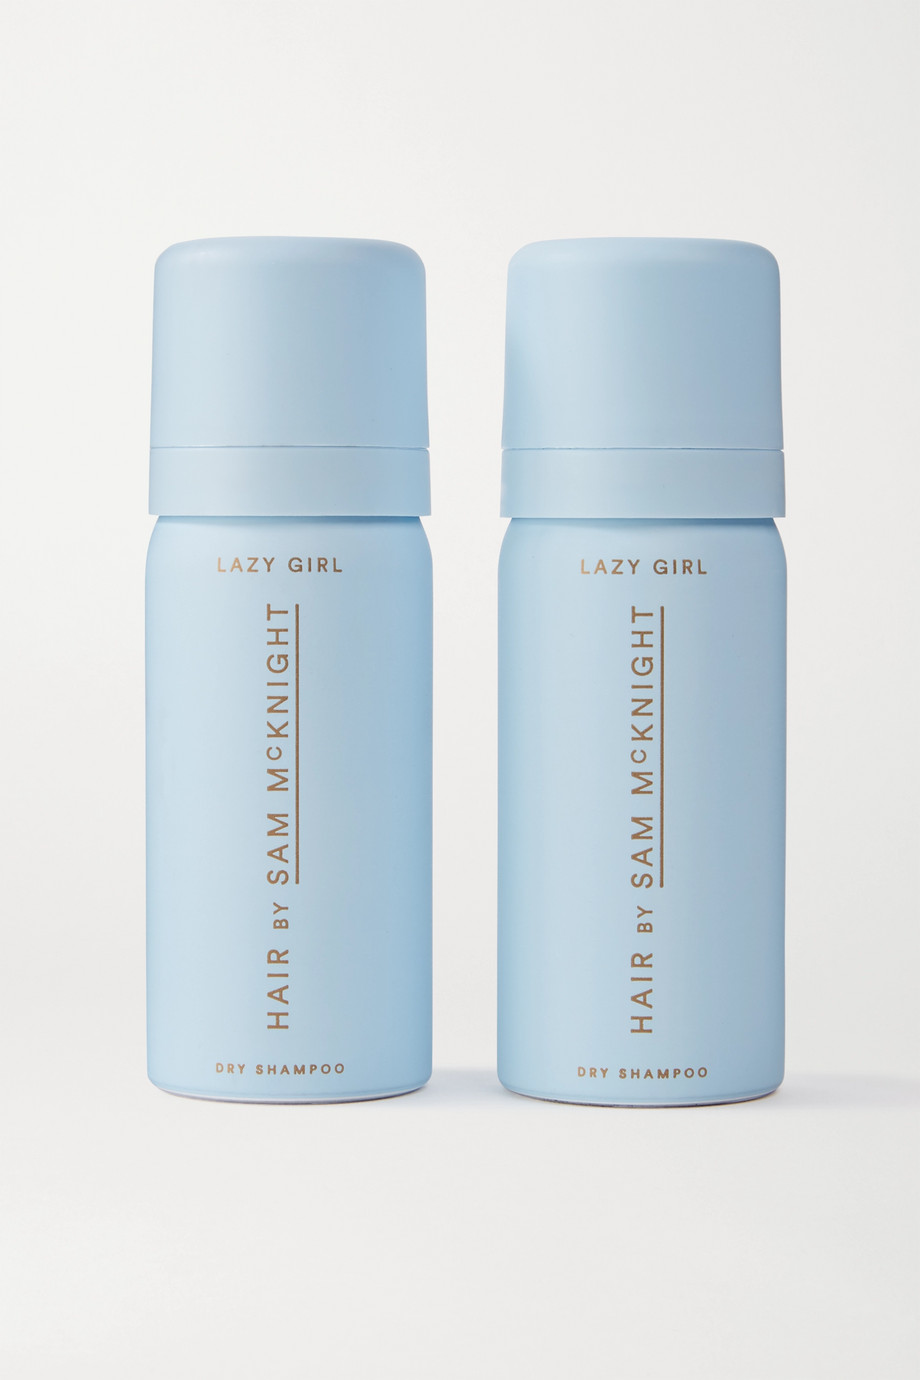 HAIR BY SAM McKNIGHT Lazy Girl Dry Shampoo, 2 x 50ml